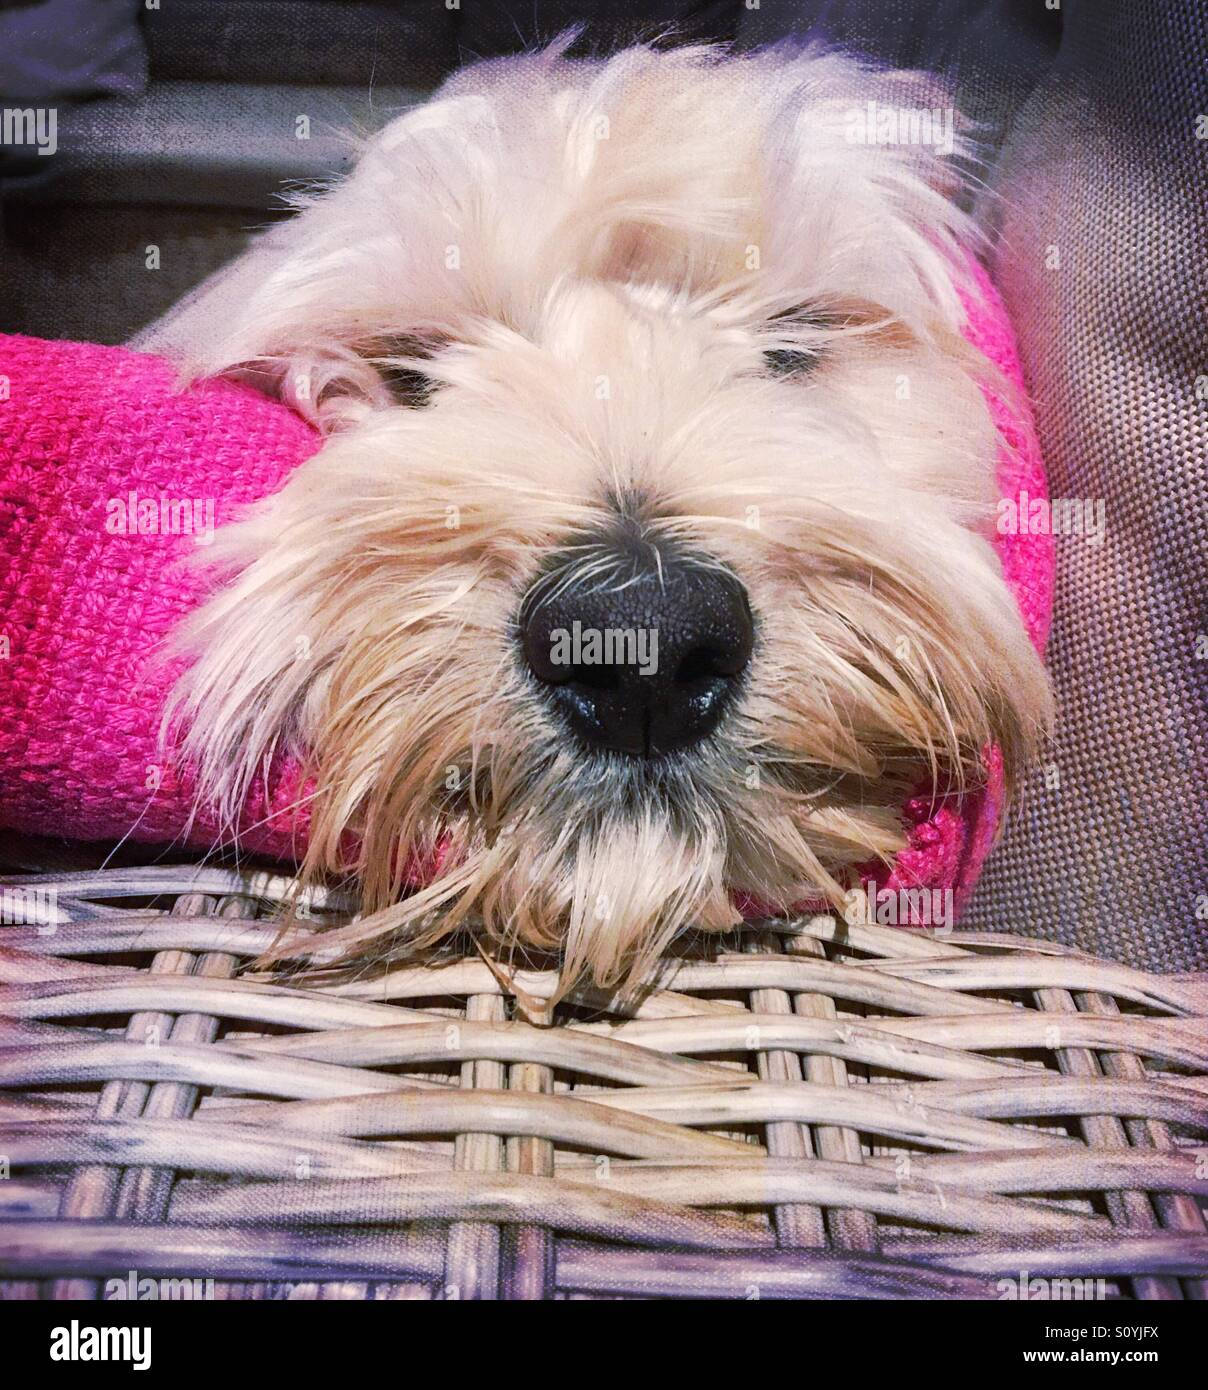 Dogs face on cushion - Stock Image